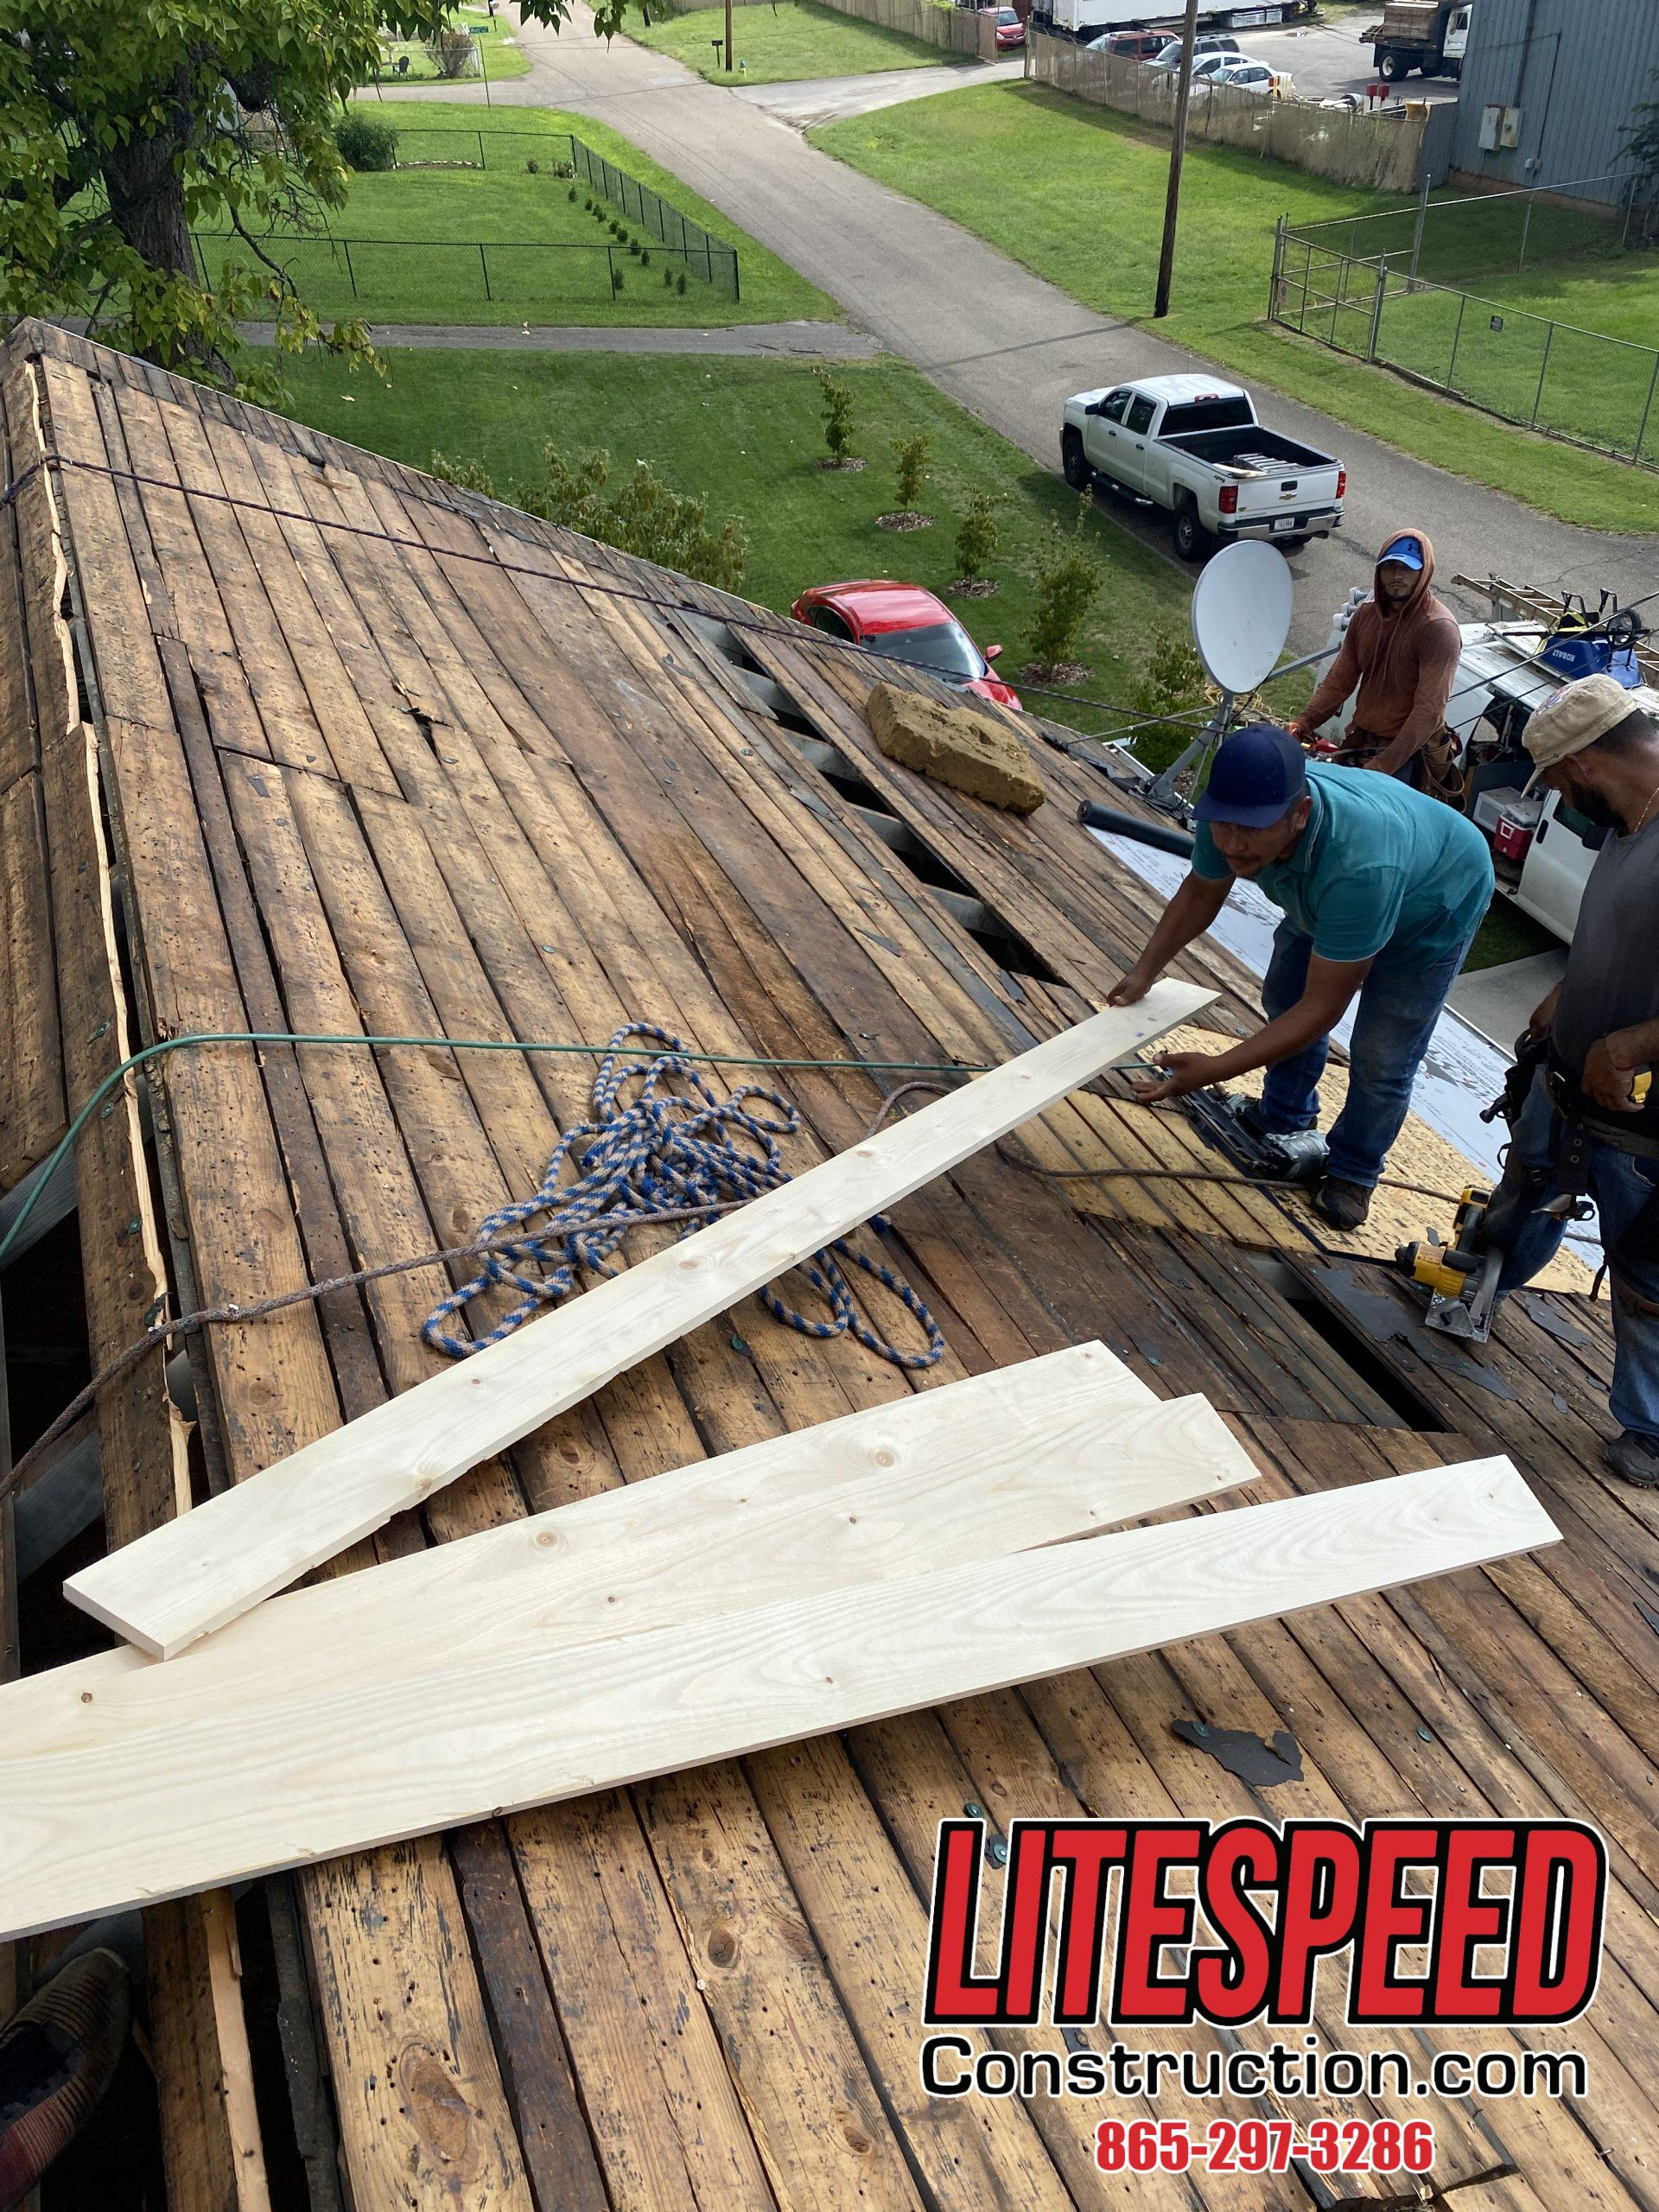 This is a picture of the roofing crew replacing pieces of wood